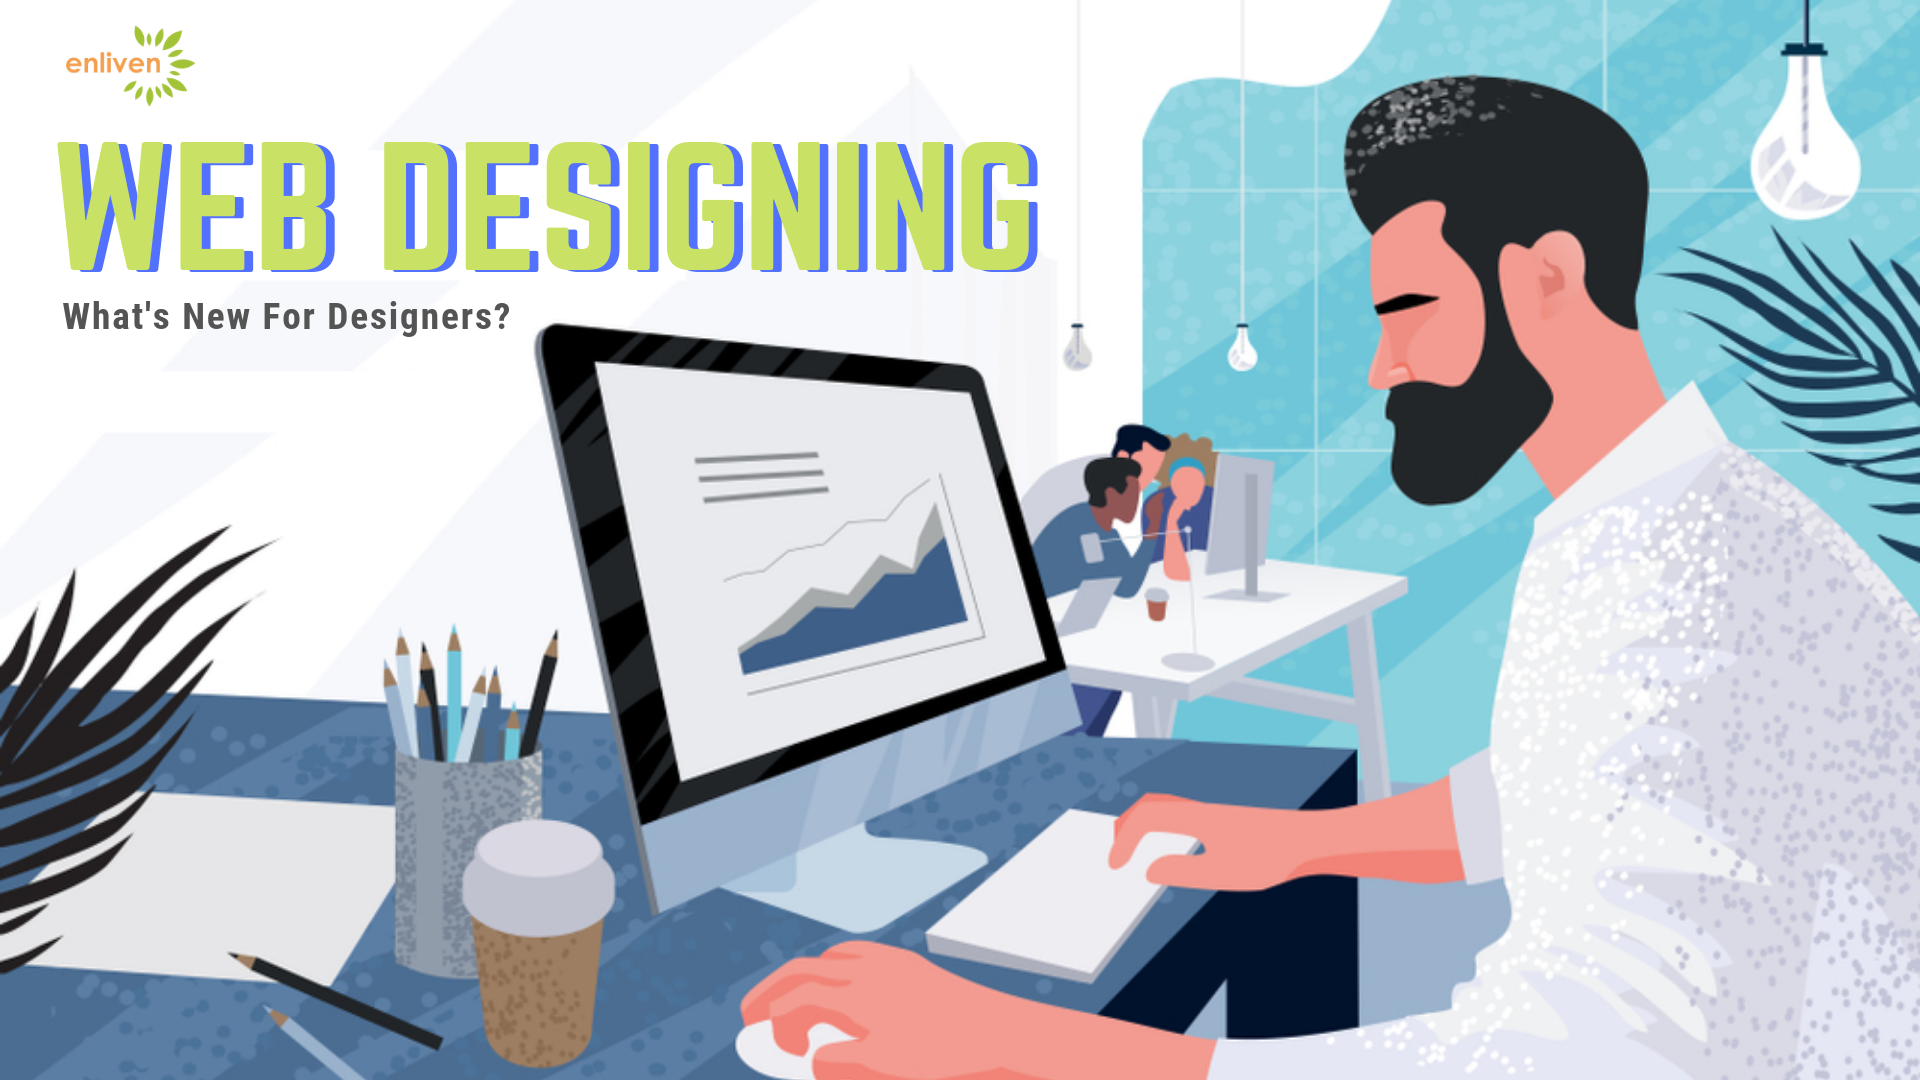 Web Designing - What's New in 2019